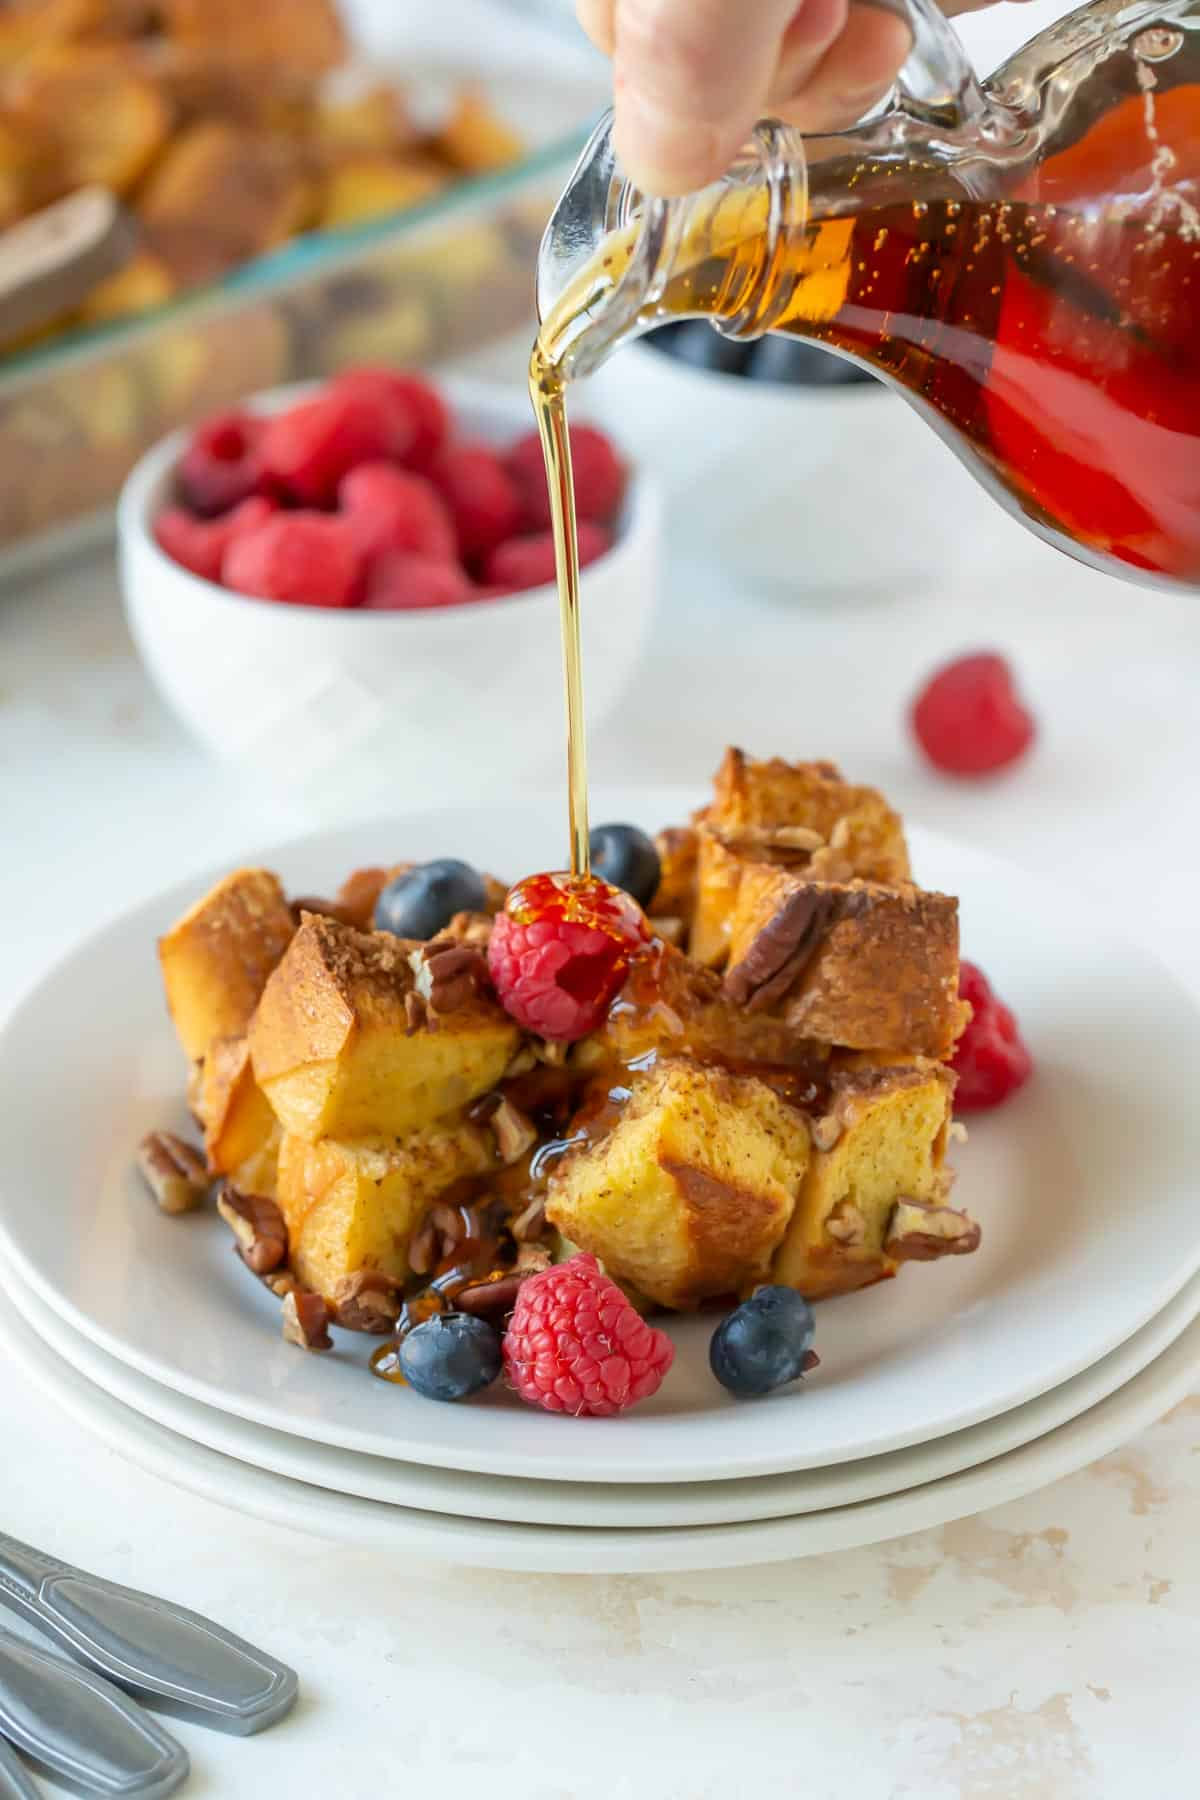 Syrup being poured over baked eggnog French toast with fruit in a white plate.